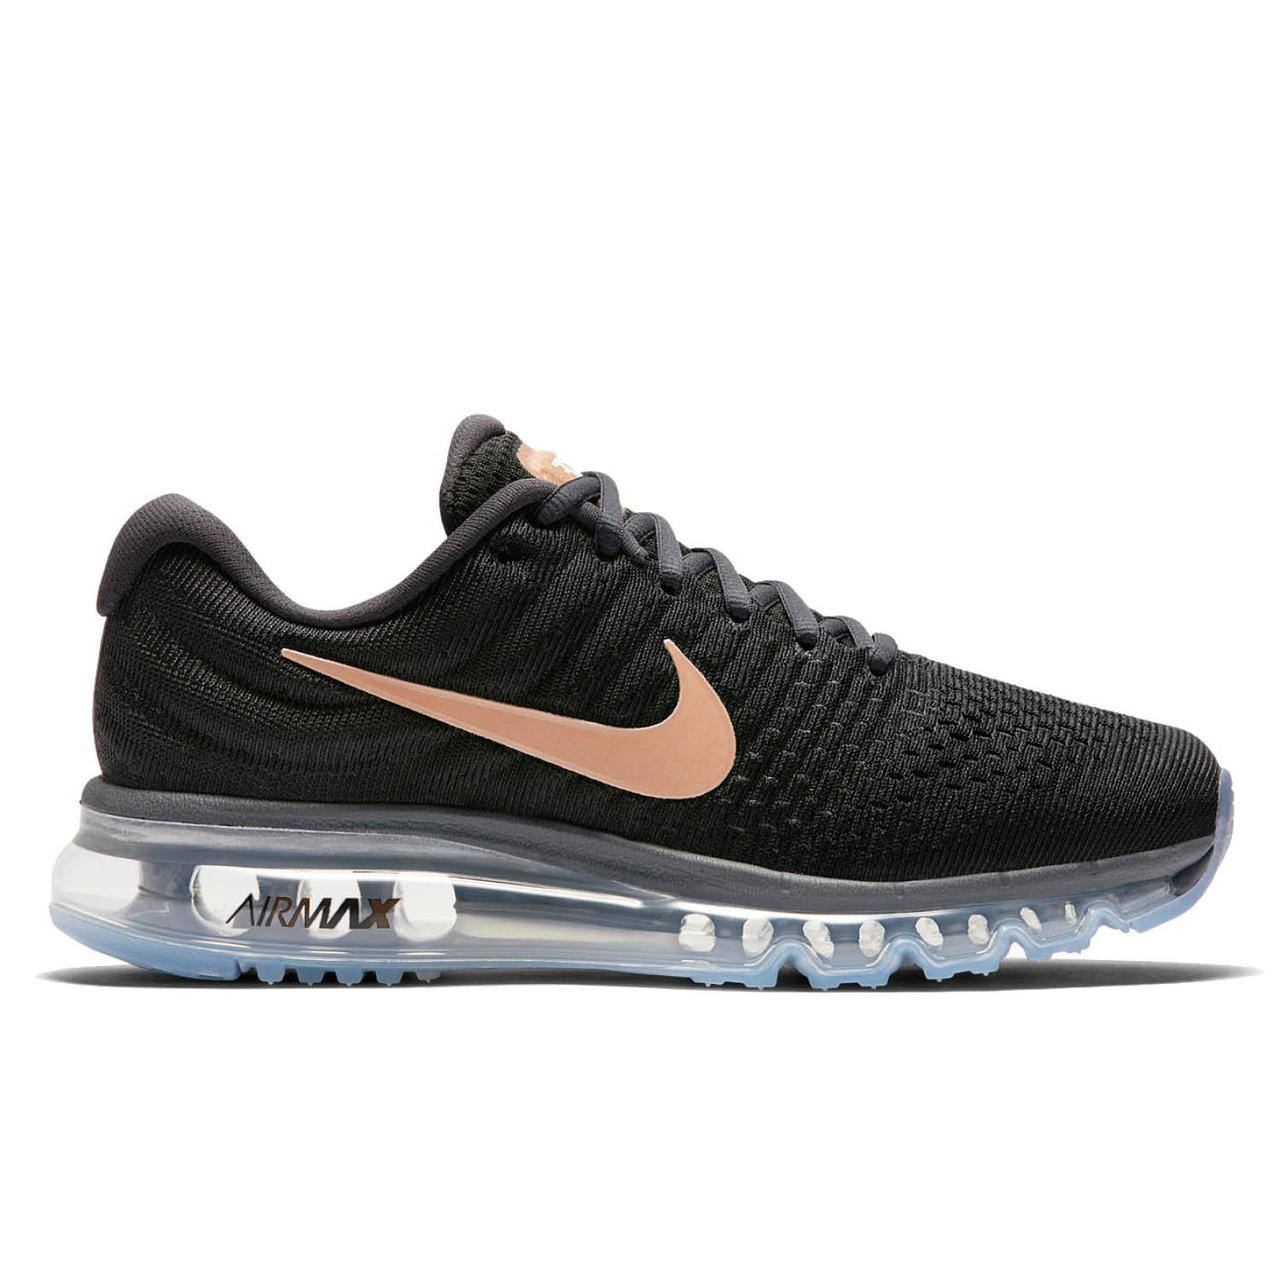 bf7aafe9 Оригинальные кроссовки Nike Air Max 2017 - Sport-Sneakers - Оригинальные  кроссовки из Европы и